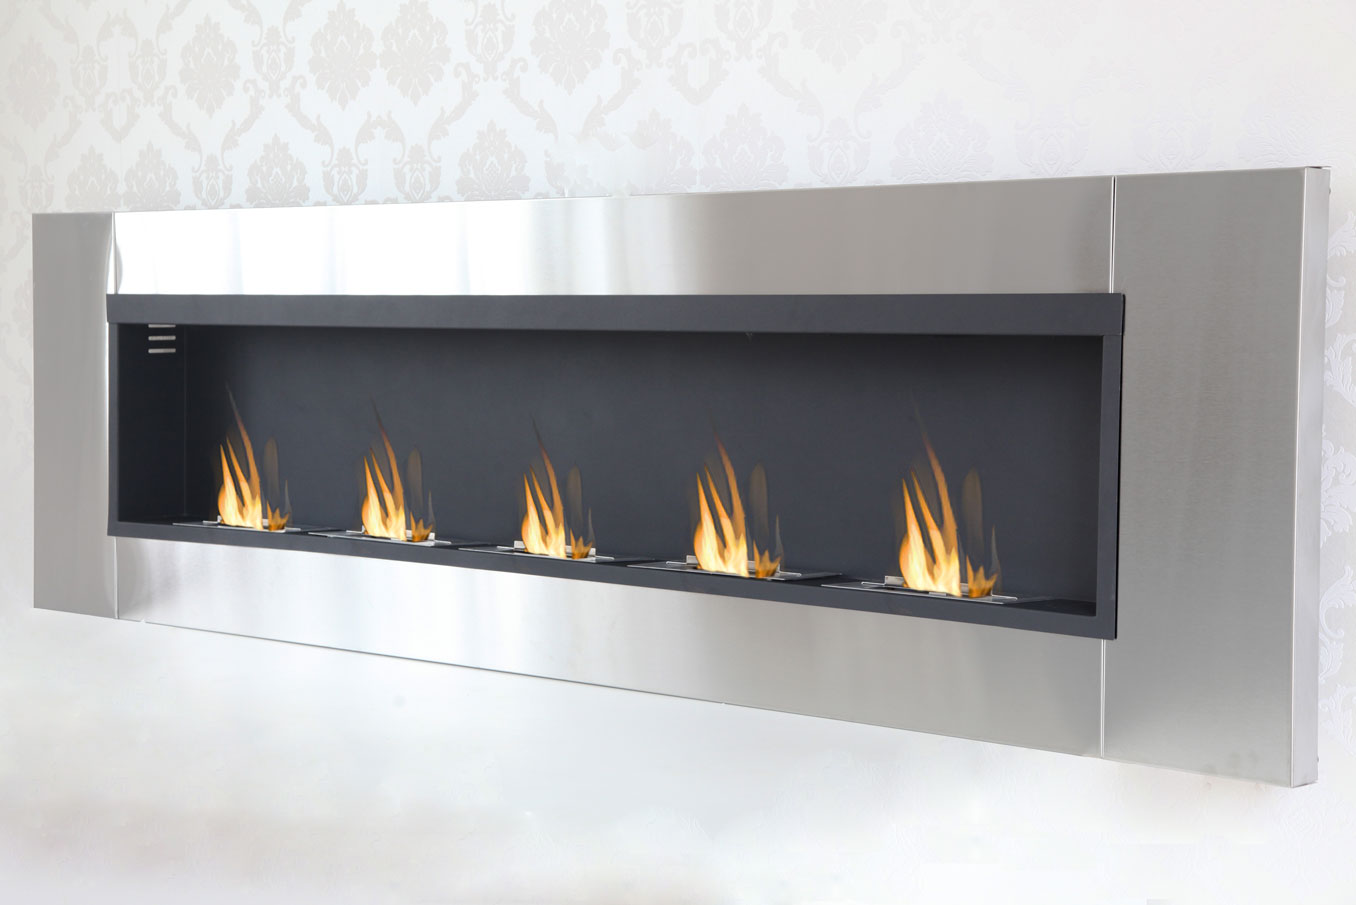 5 burner luxury chimney bio ethanol gel fireplace wall fireplace cheminee ebay. Black Bedroom Furniture Sets. Home Design Ideas